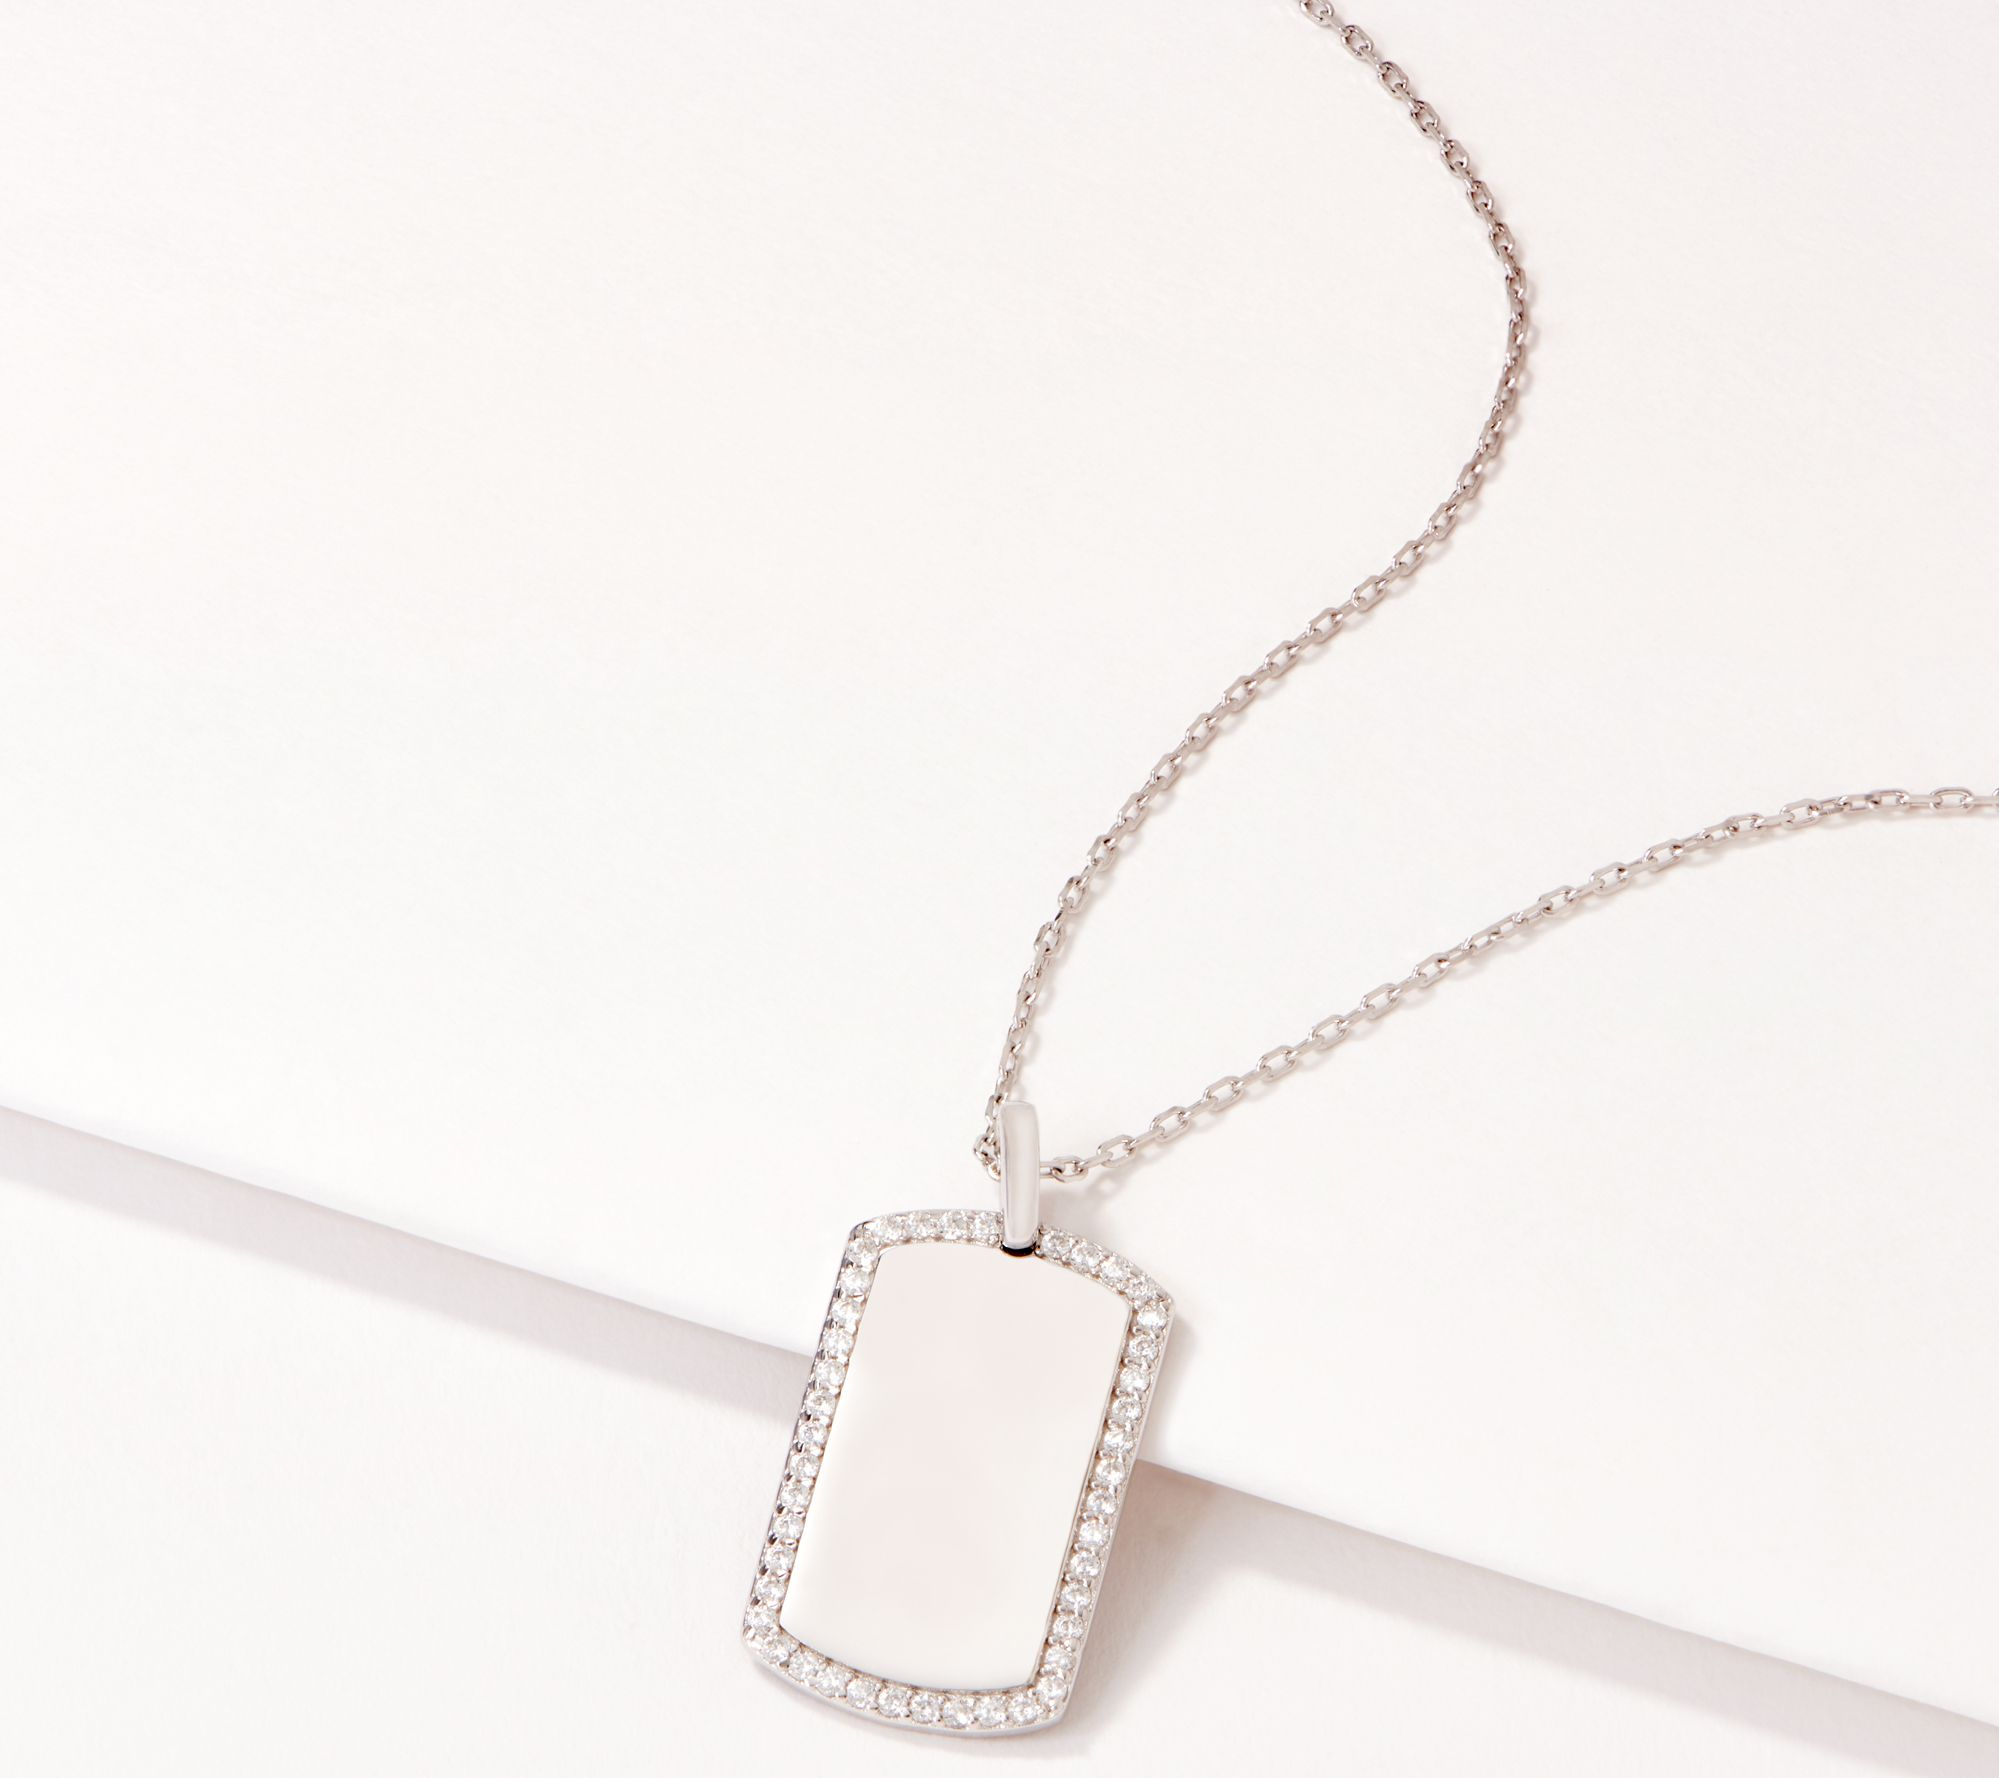 Chain Choice Heartland Womens Sterling Silver Starburst Cross Necklace Best Quality USA Made